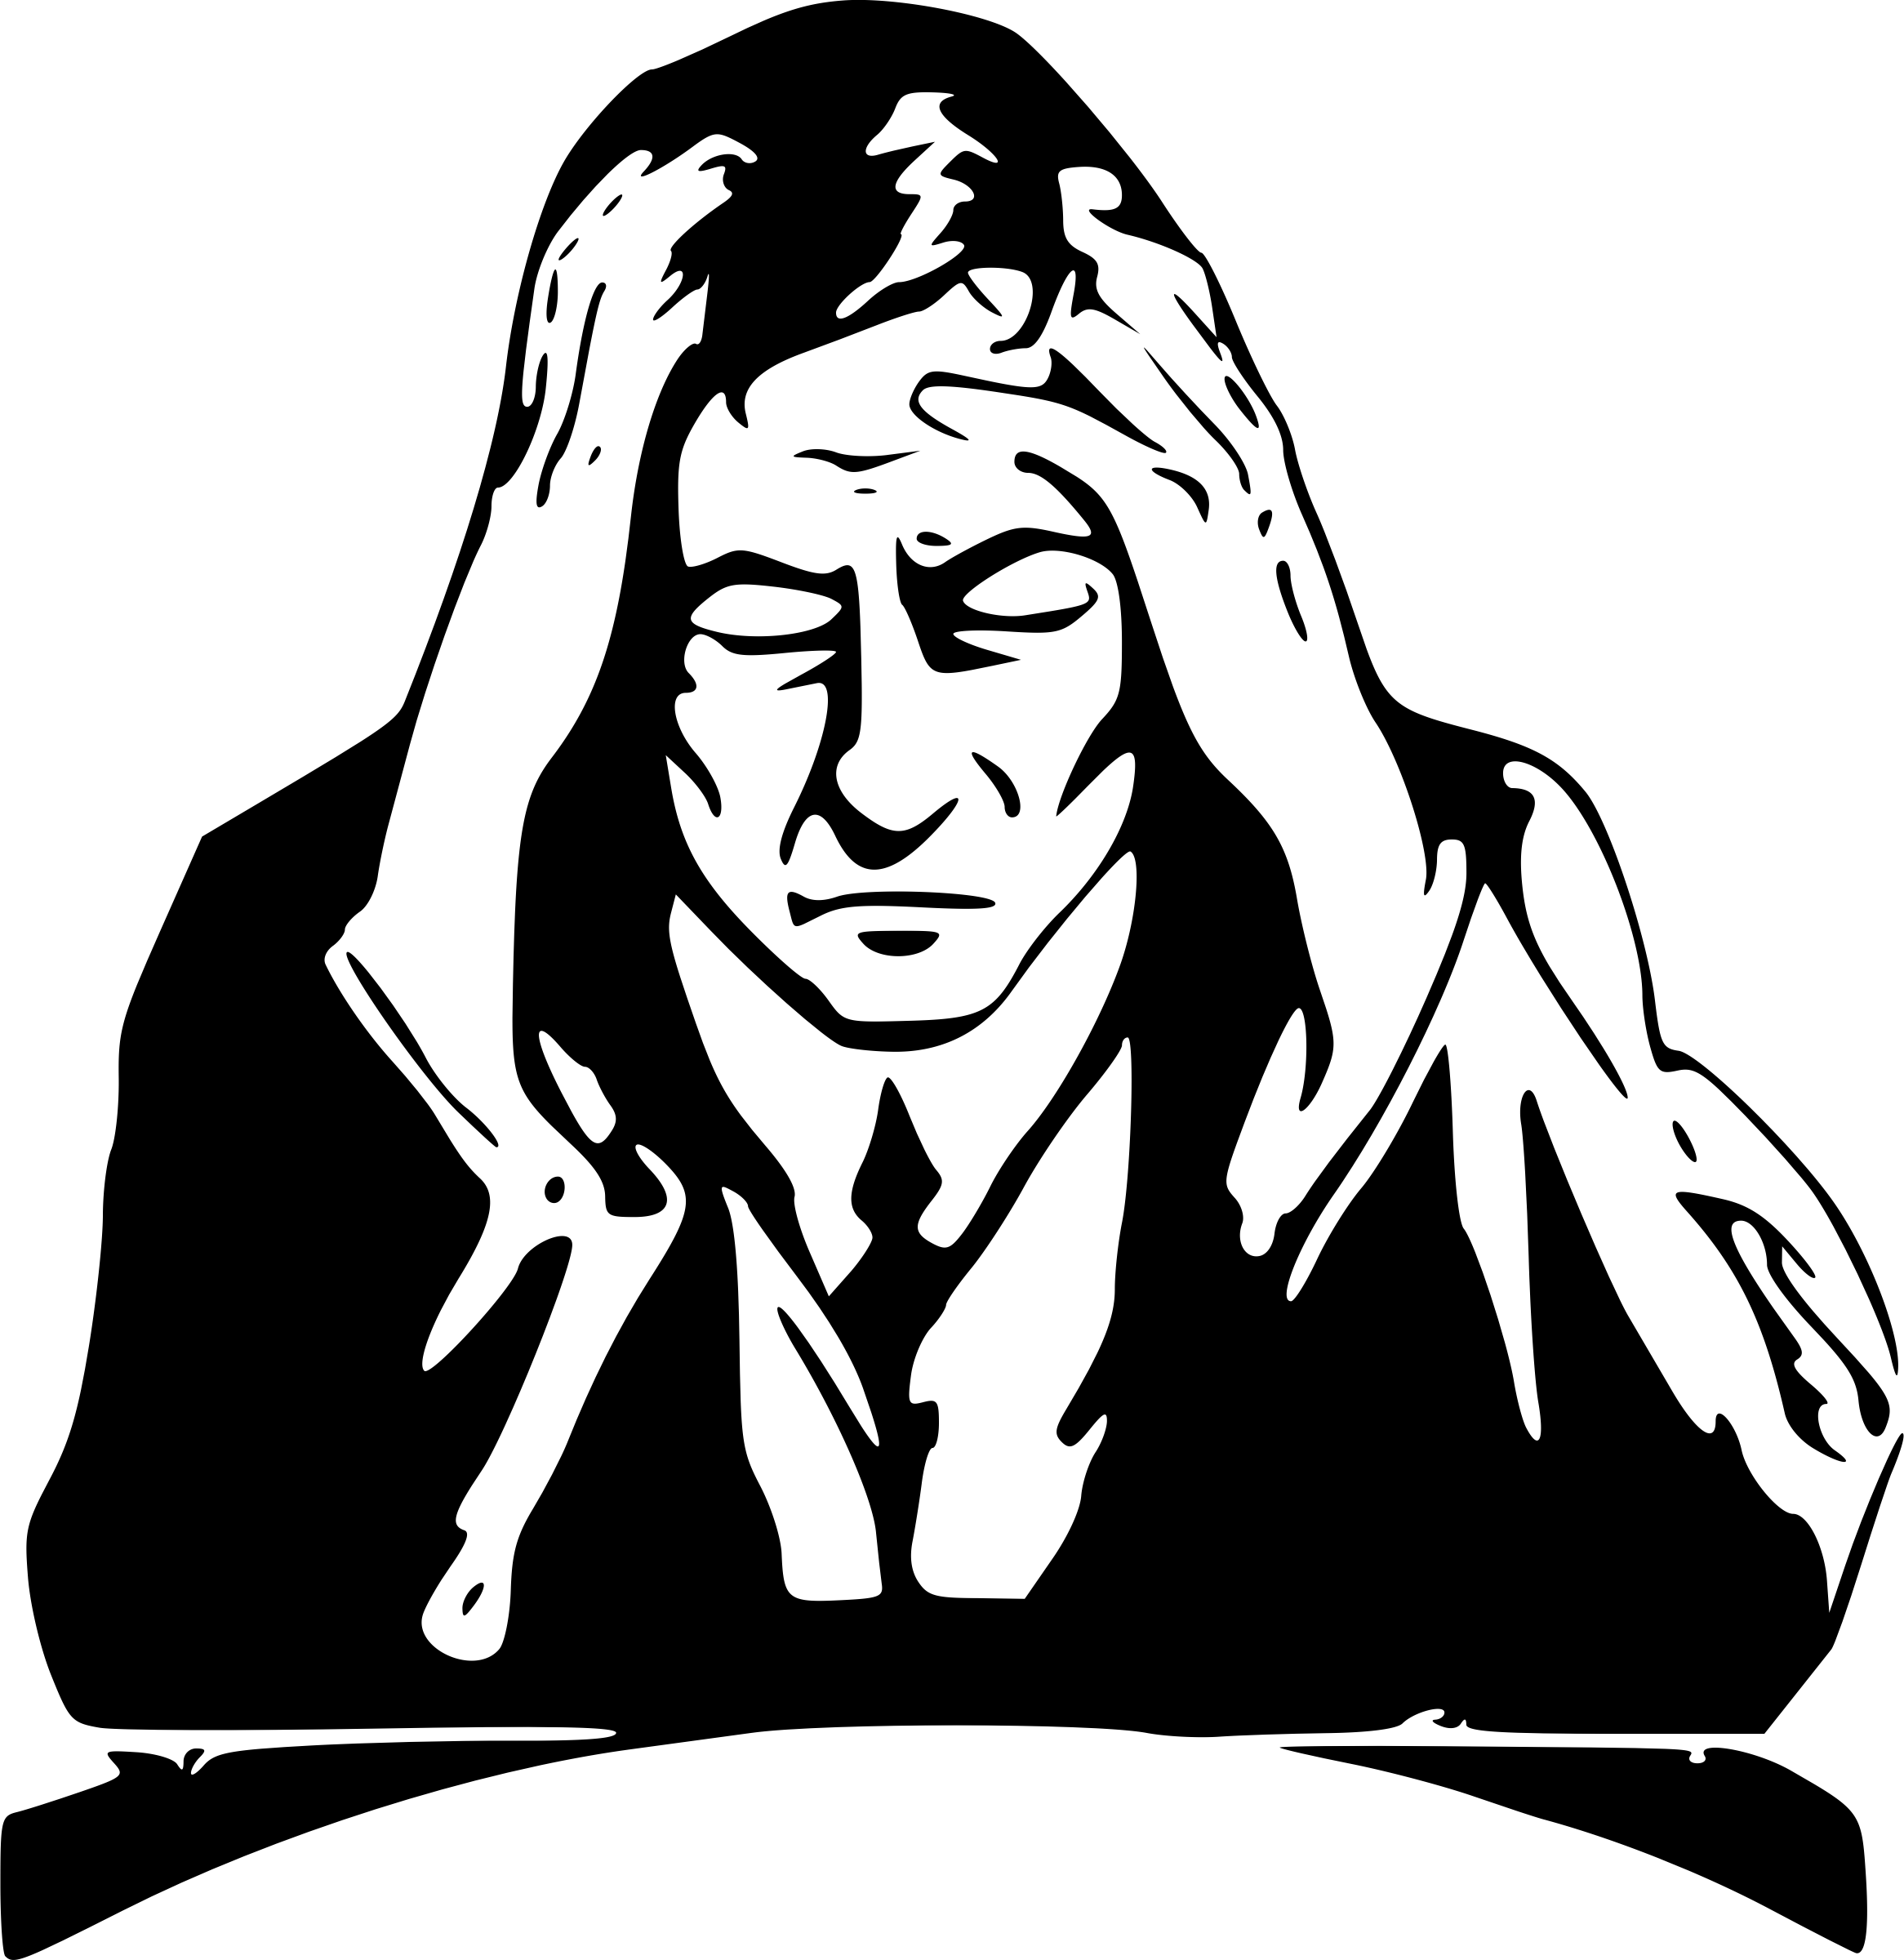 Distress people clipart images.